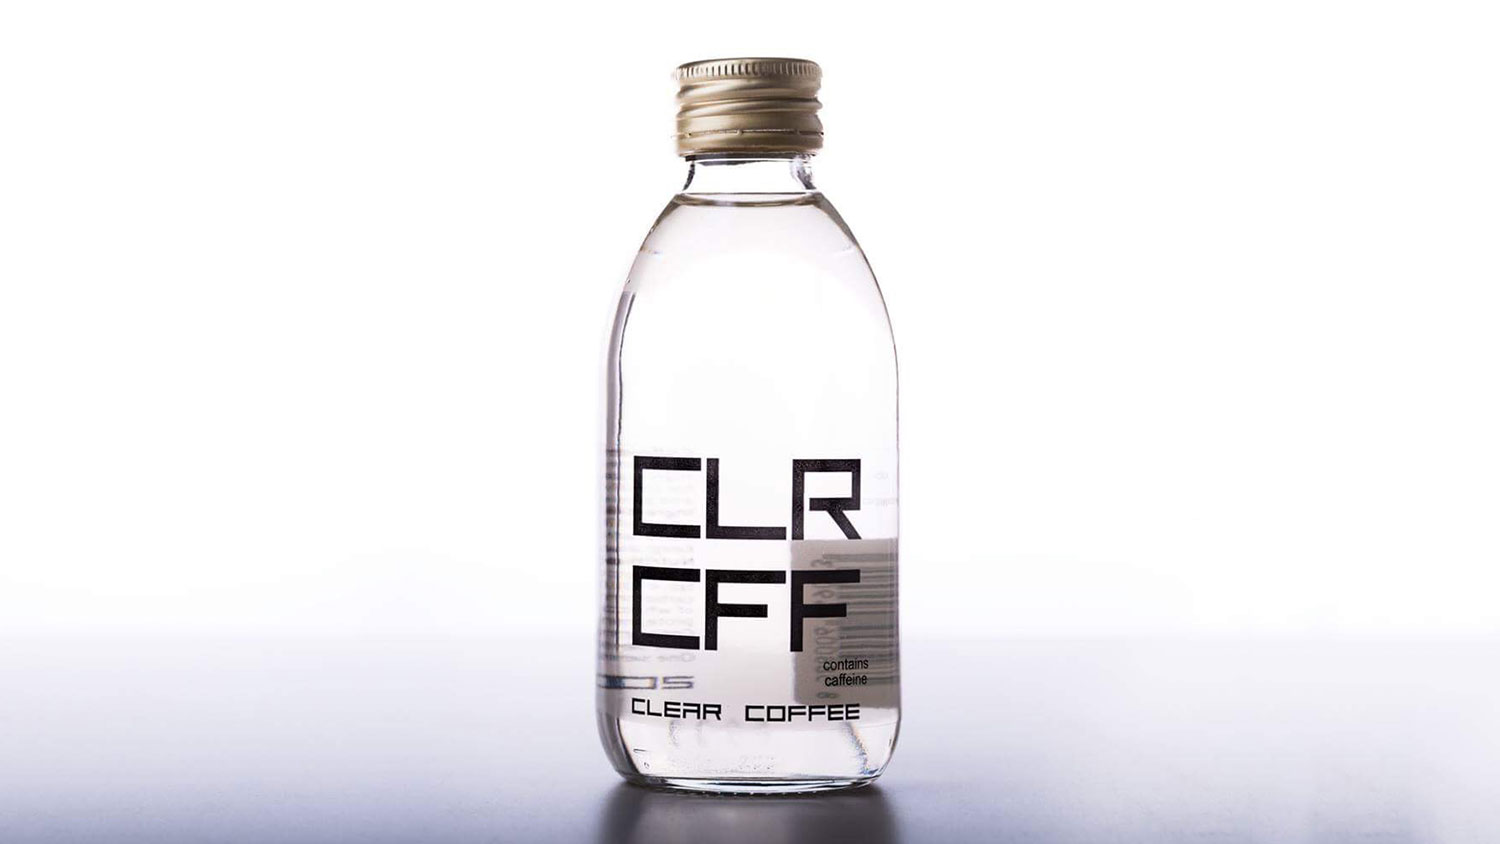 clear coffee CLR CFF